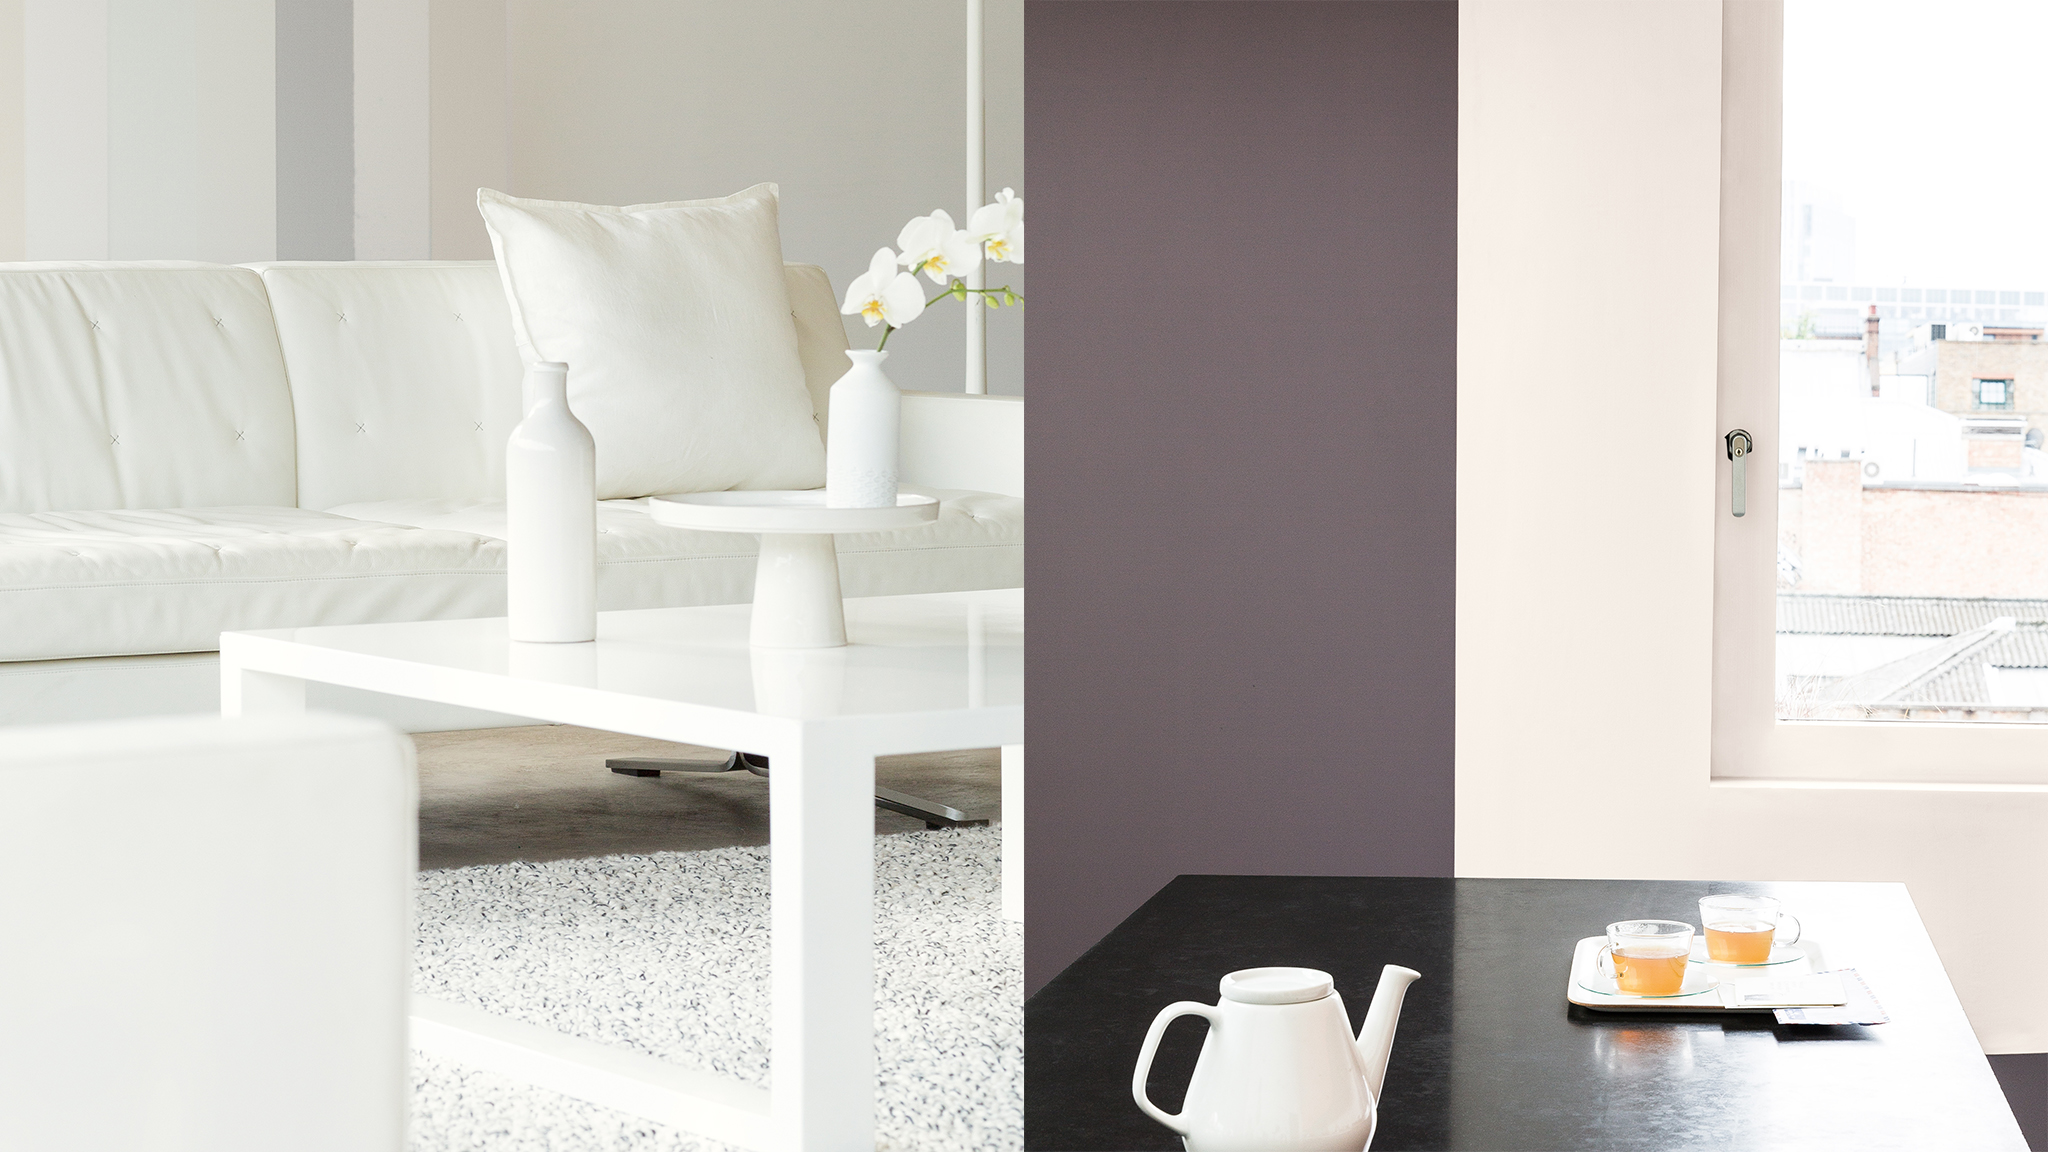 Paint architraves, skirting boards and any other mouldings in light, reflective paint colours, perhaps in a subtly contrasting tone to the colour on the walls.